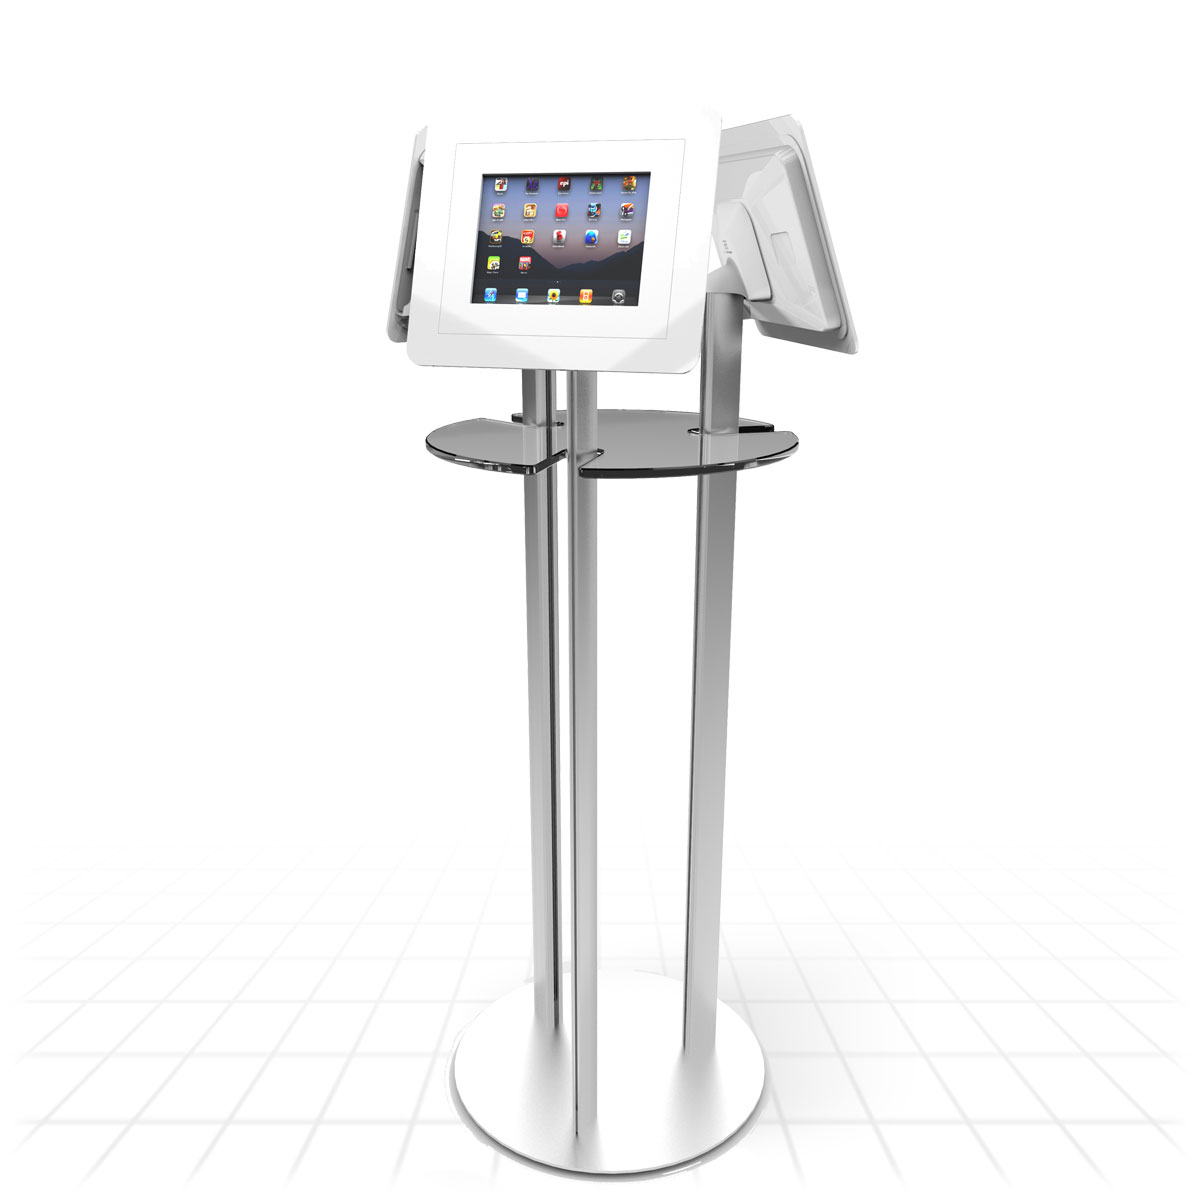 Exhibition Display Stands : Poseur table tablet display stand stands